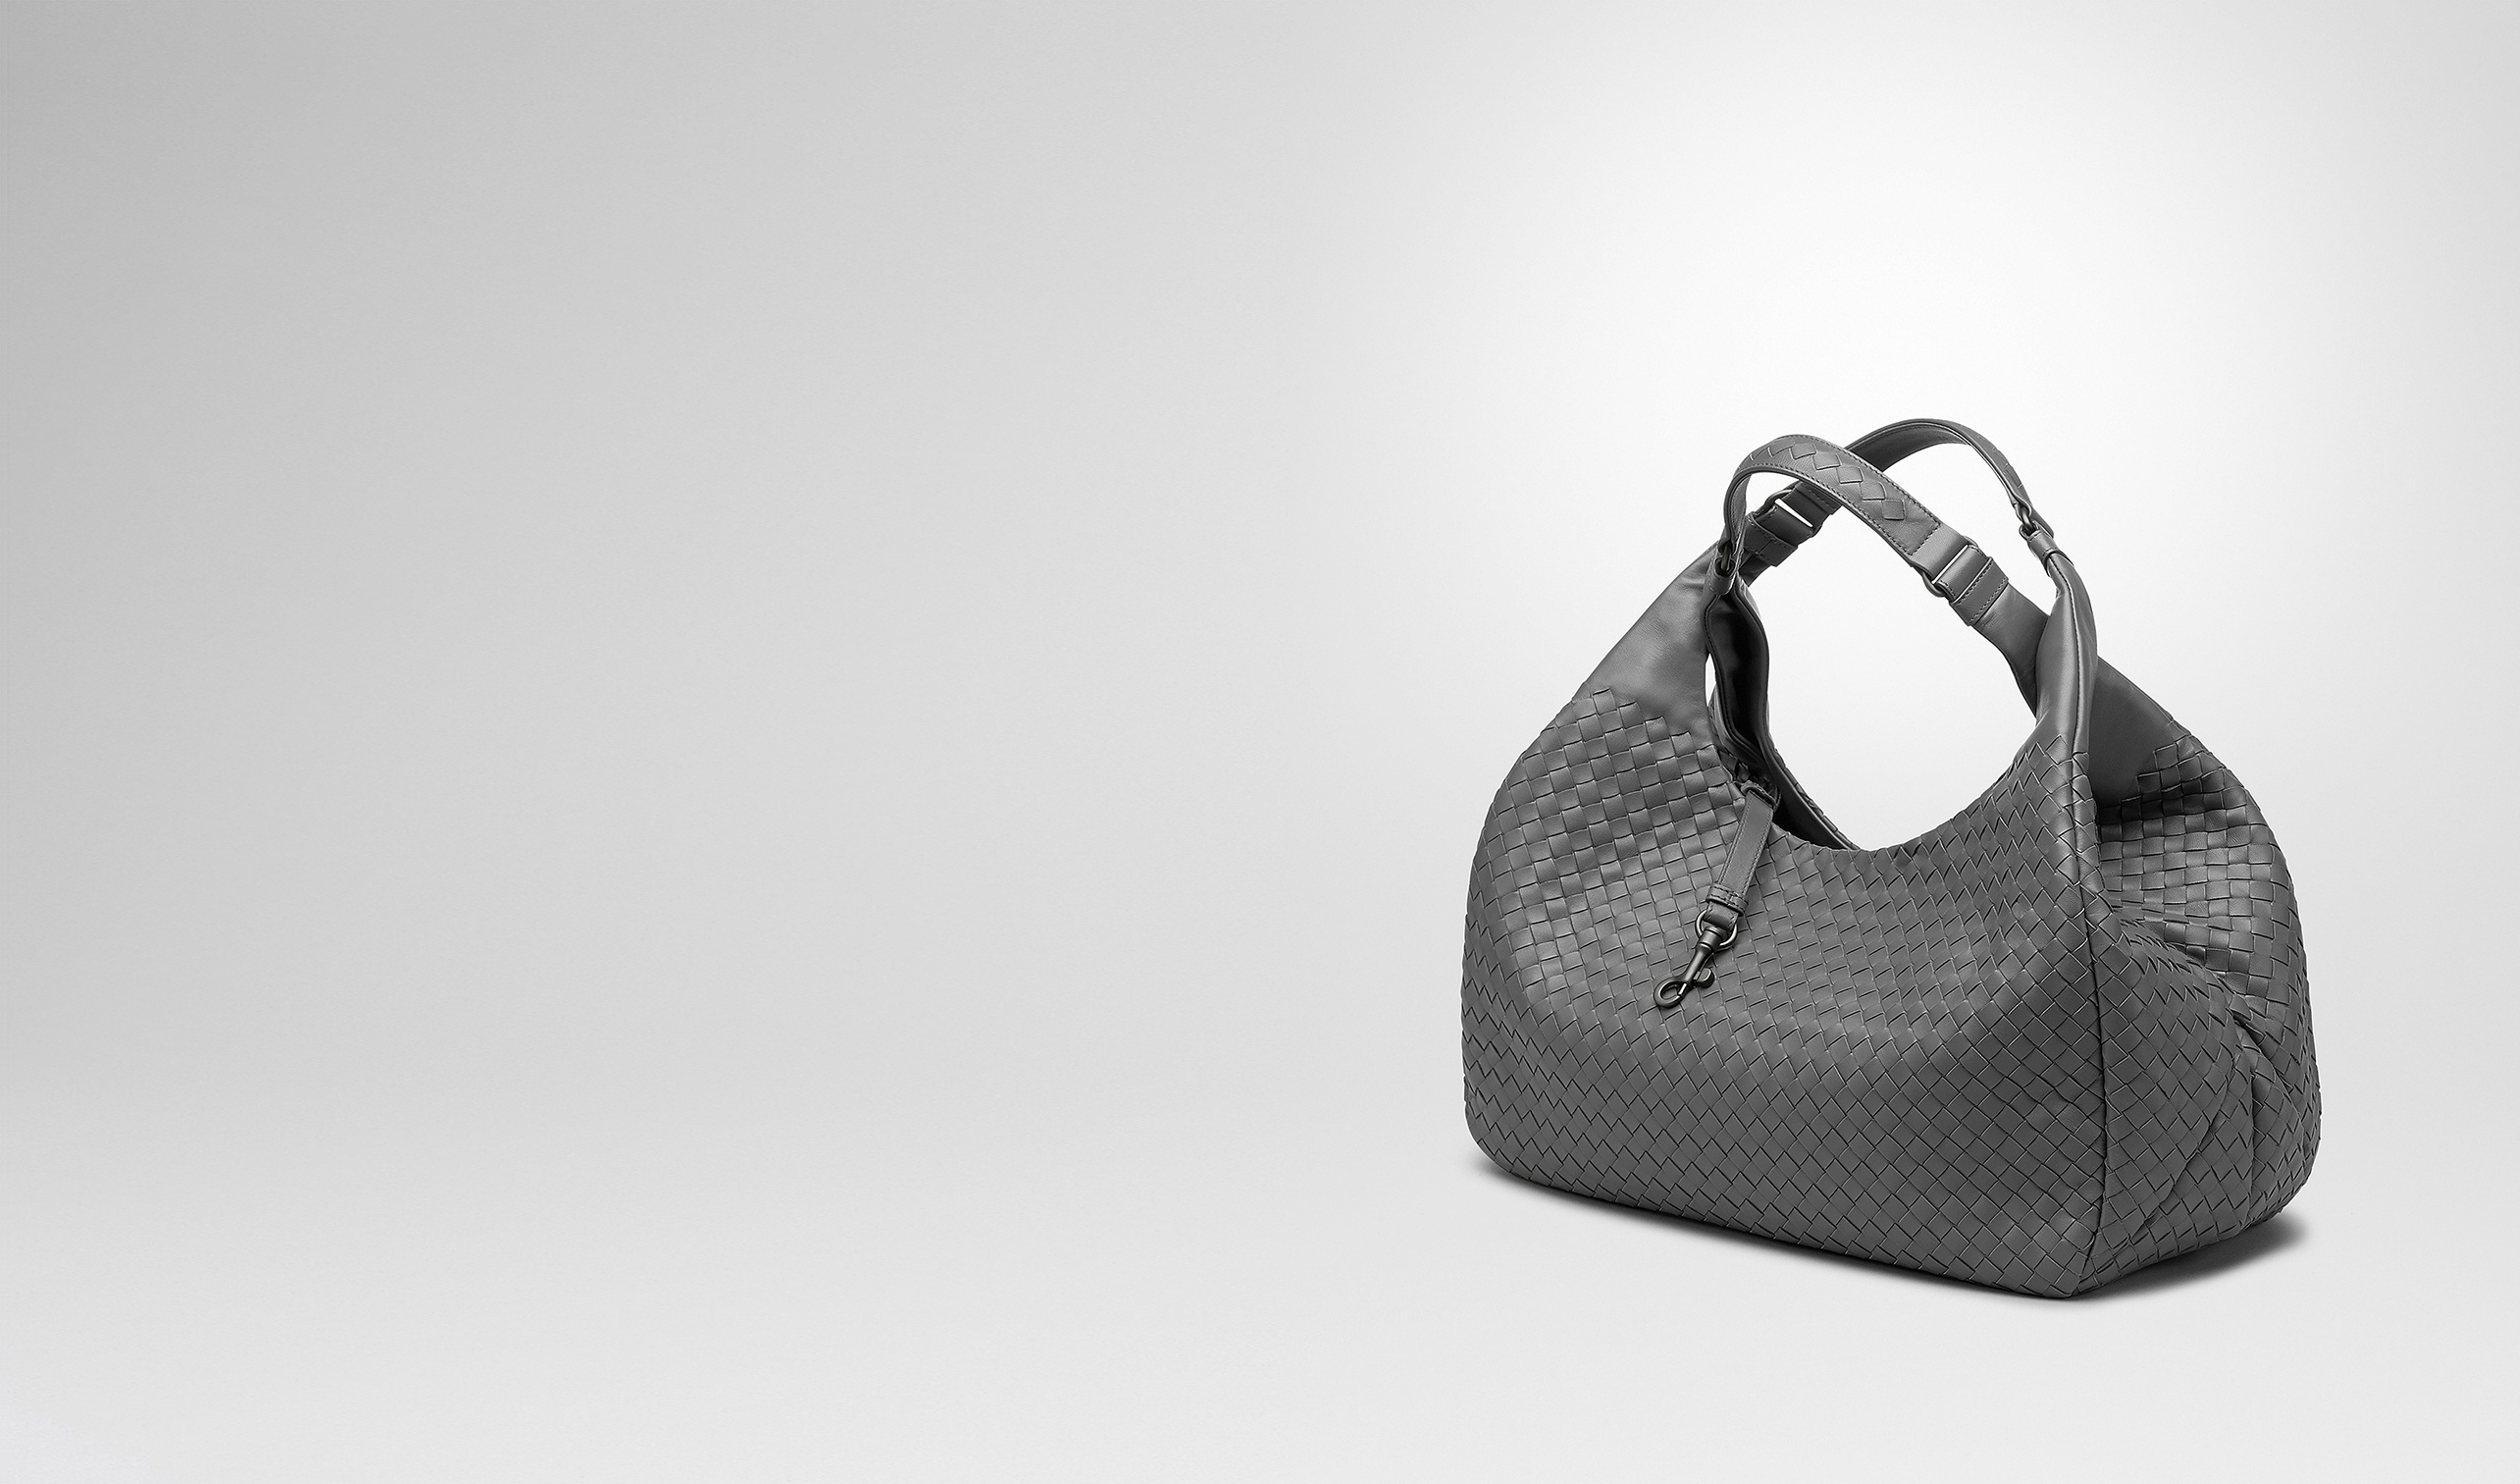 BOTTEGA VENETA Borsa a spalla D BORSA CAMPANA NEW LIGHT GREY IN NAPPA INTRECCIATA pl